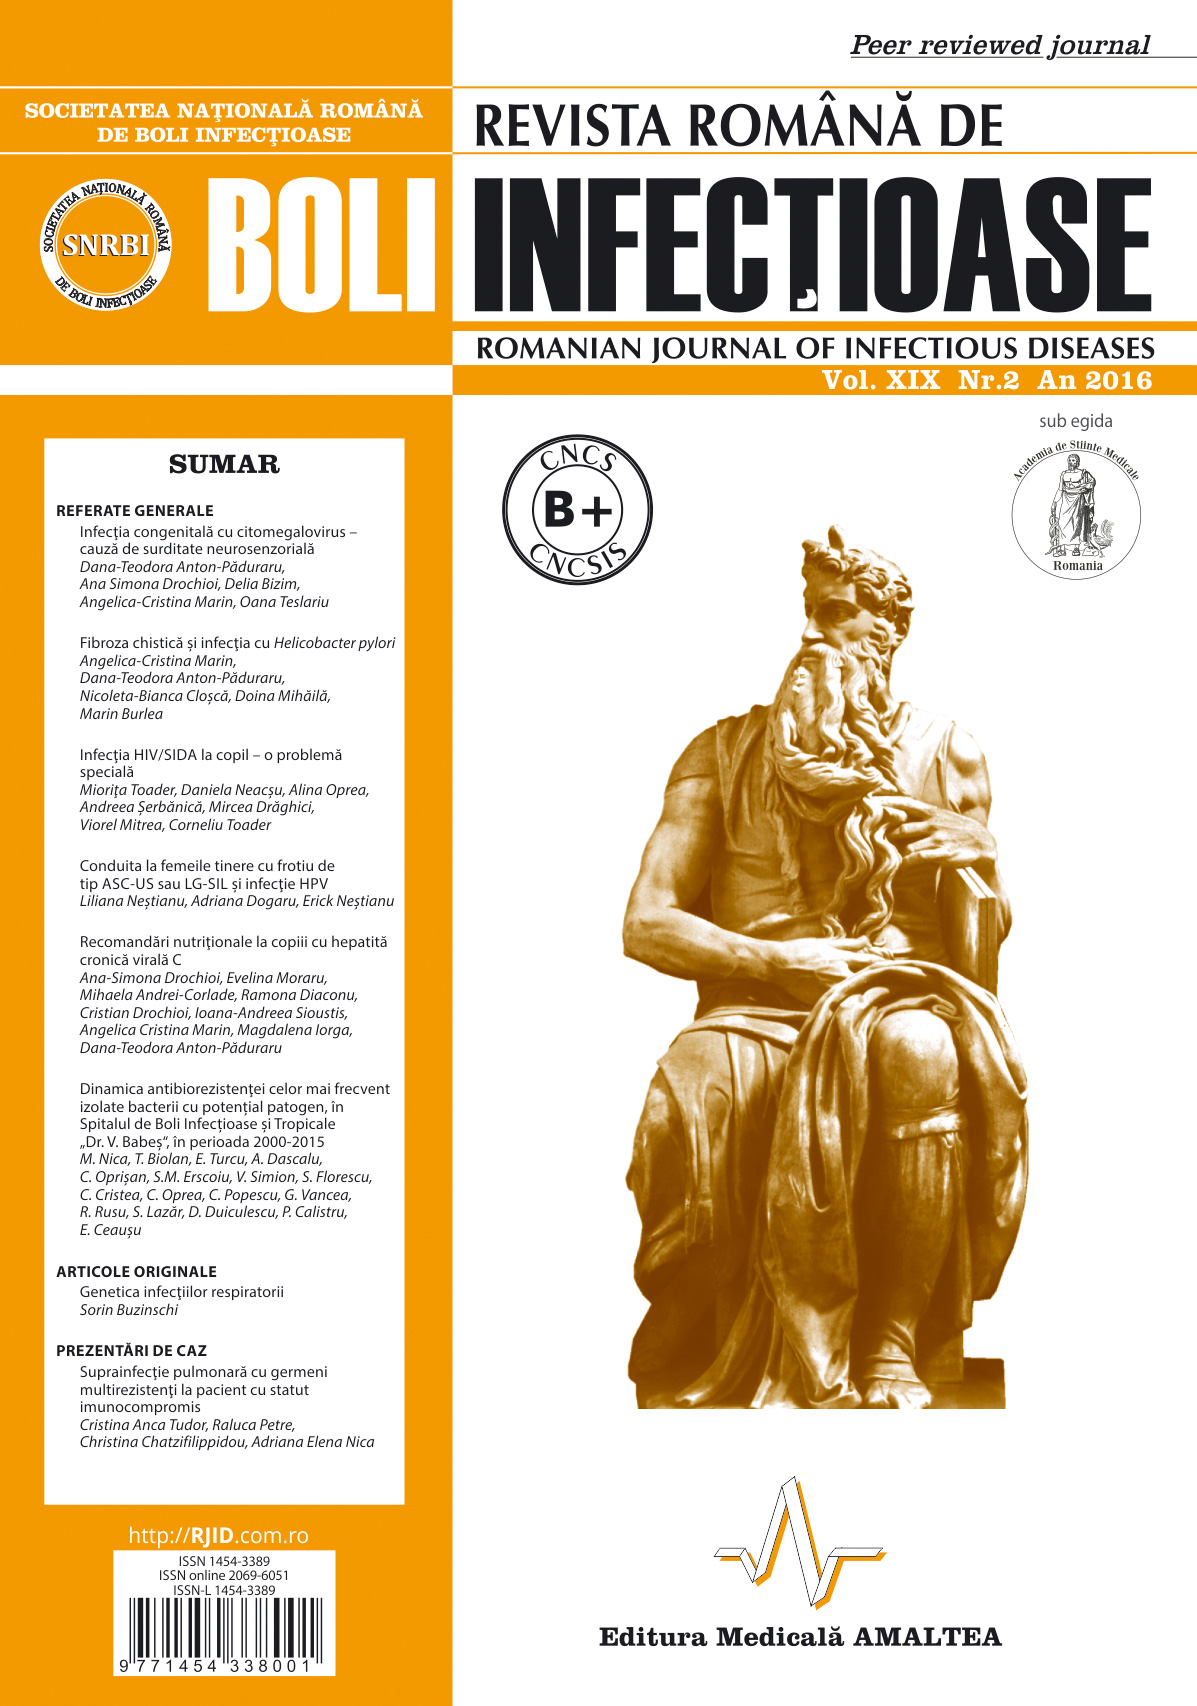 Revista Romana de Boli Infectioase | Vol. XIX, No. 2, 2016